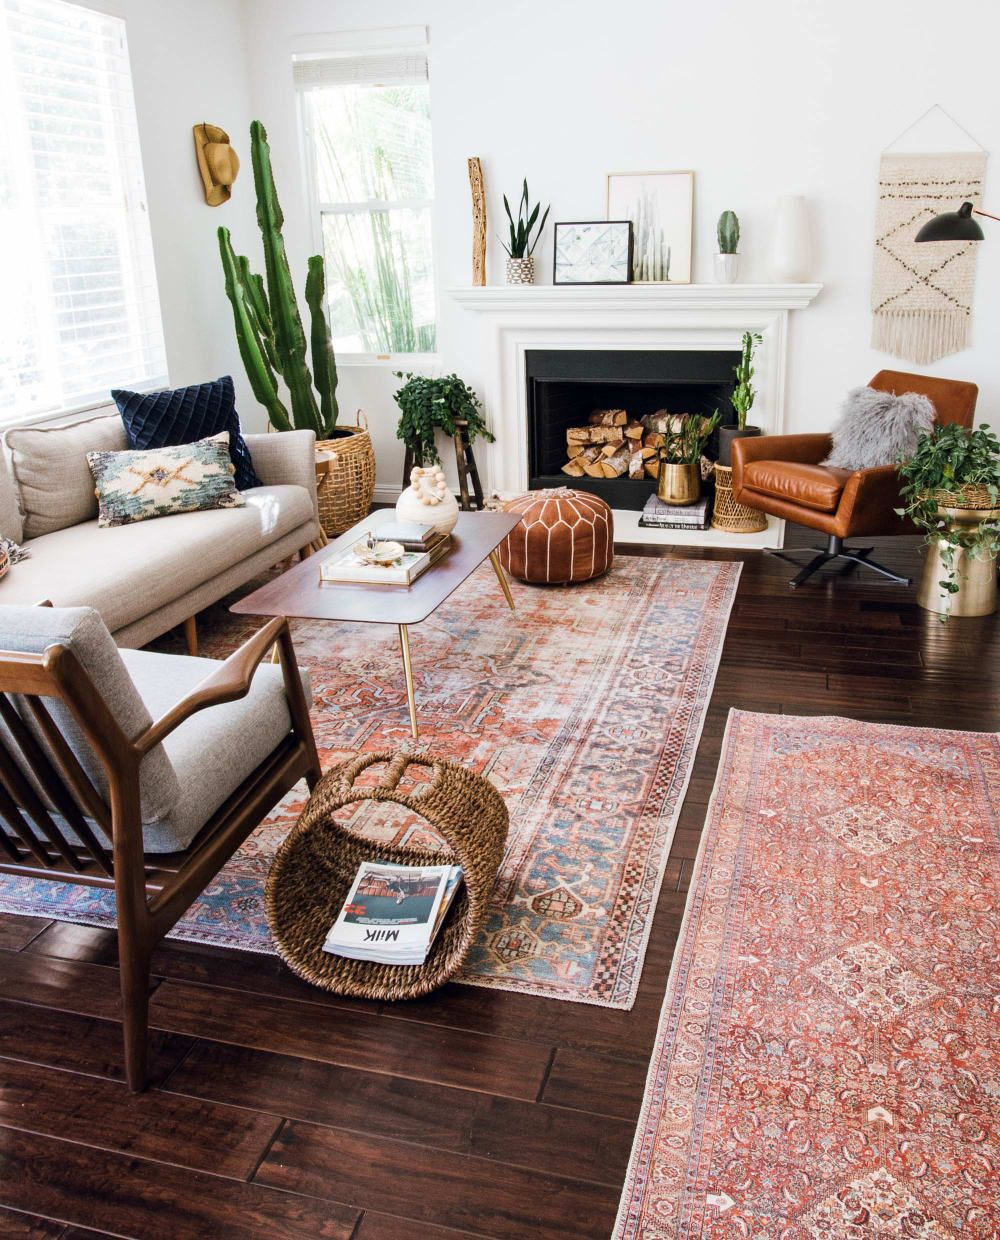 Decorator Tricks For Small Living Rooms And More - Homes Tre | Eclectic Living Room, Home Decor Inspiration, Mid Century Modern Living Room